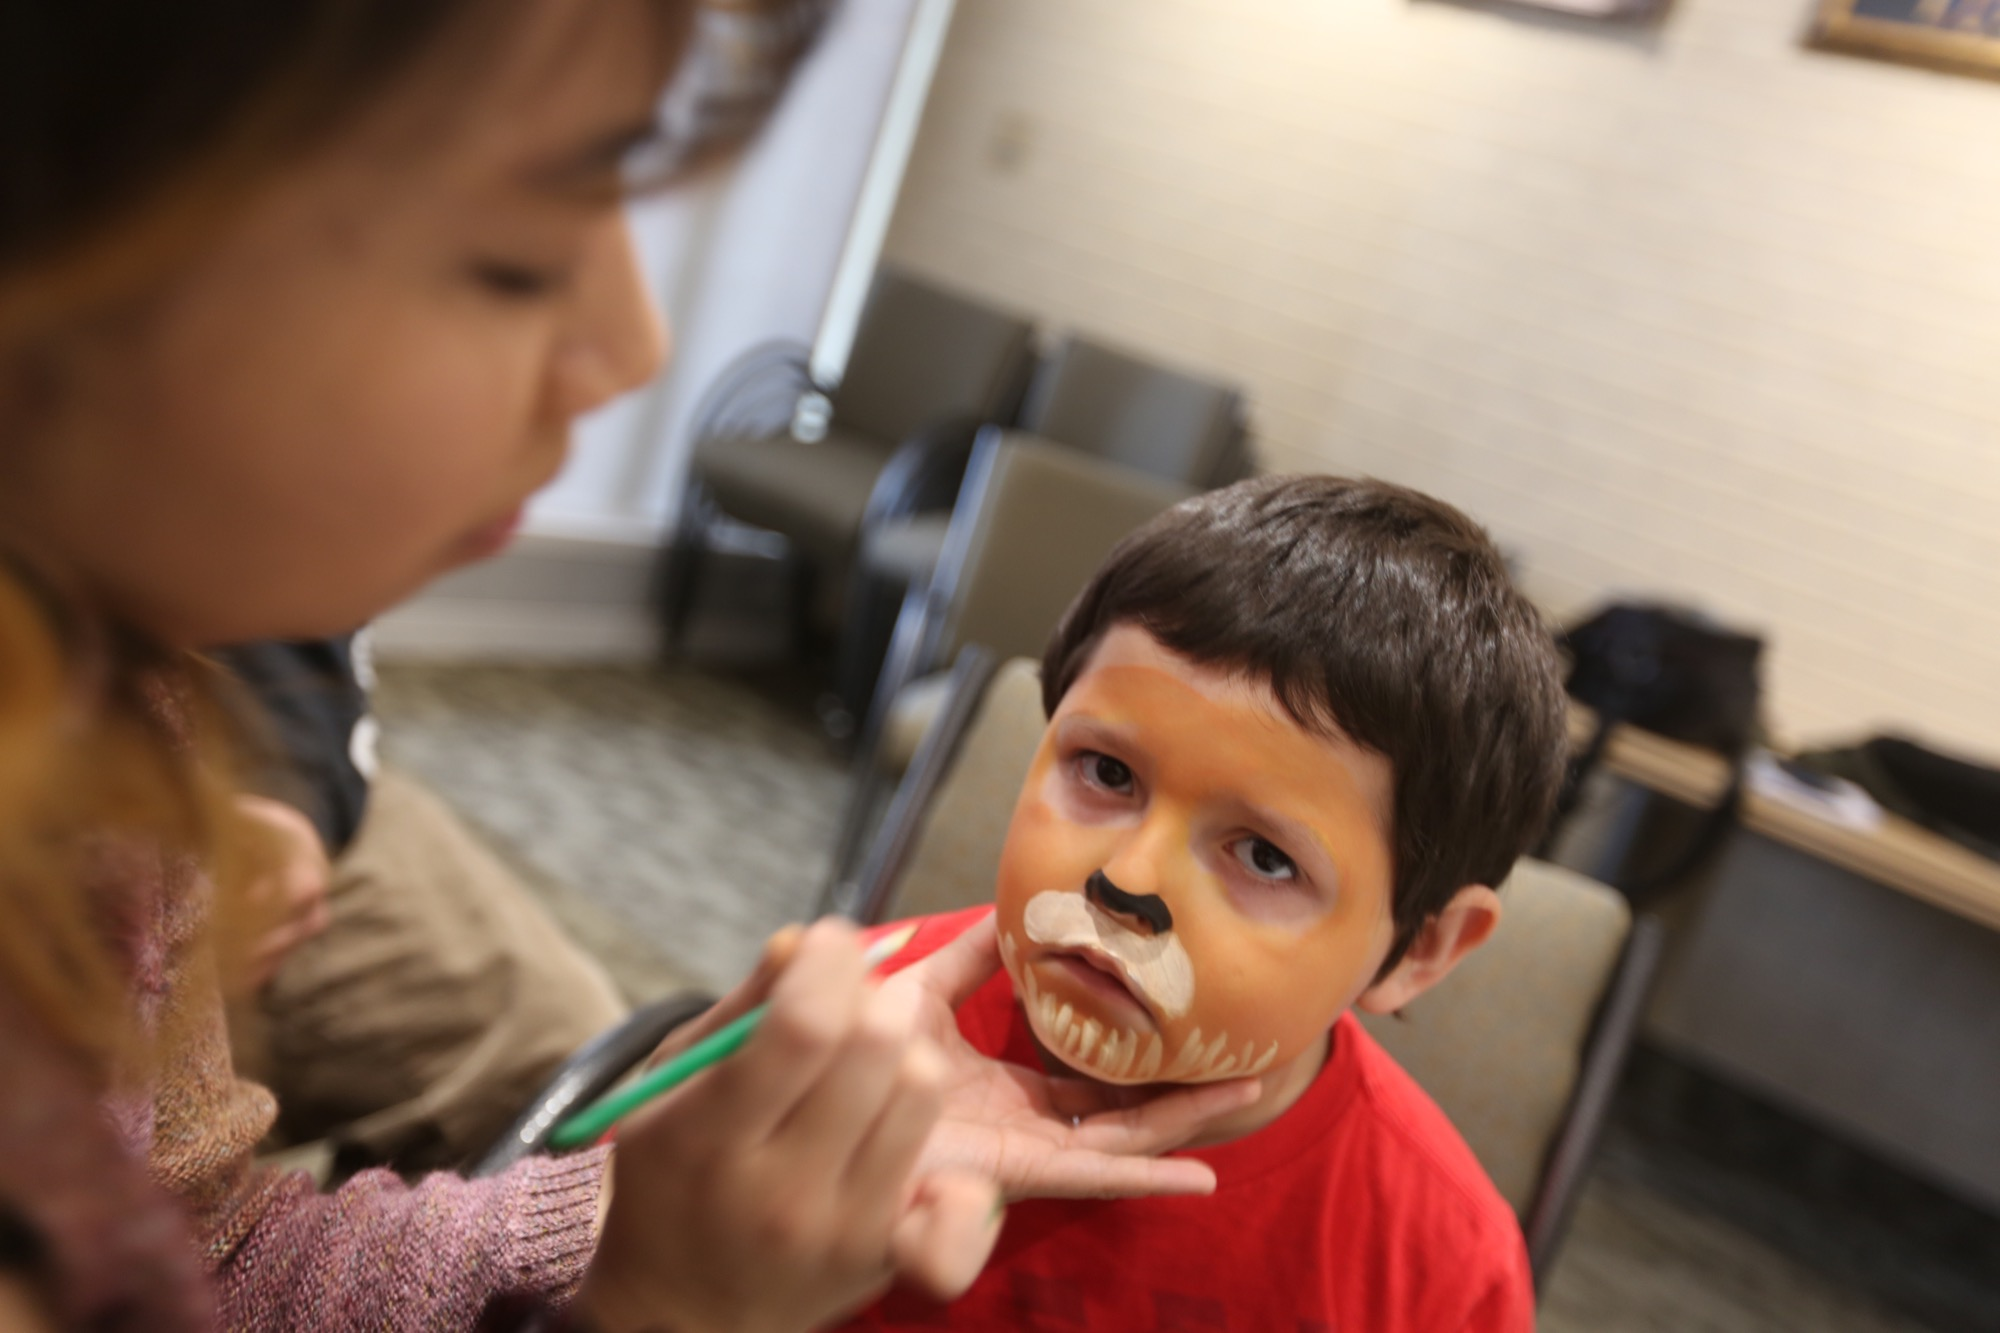 Zane Puga-Nissen takes some time out from the main celebrations in Harvest Hall for a bit of face painting in the Louis Riel Room. (MICHELE LETOURNEAU/THE BRANDON SUN)